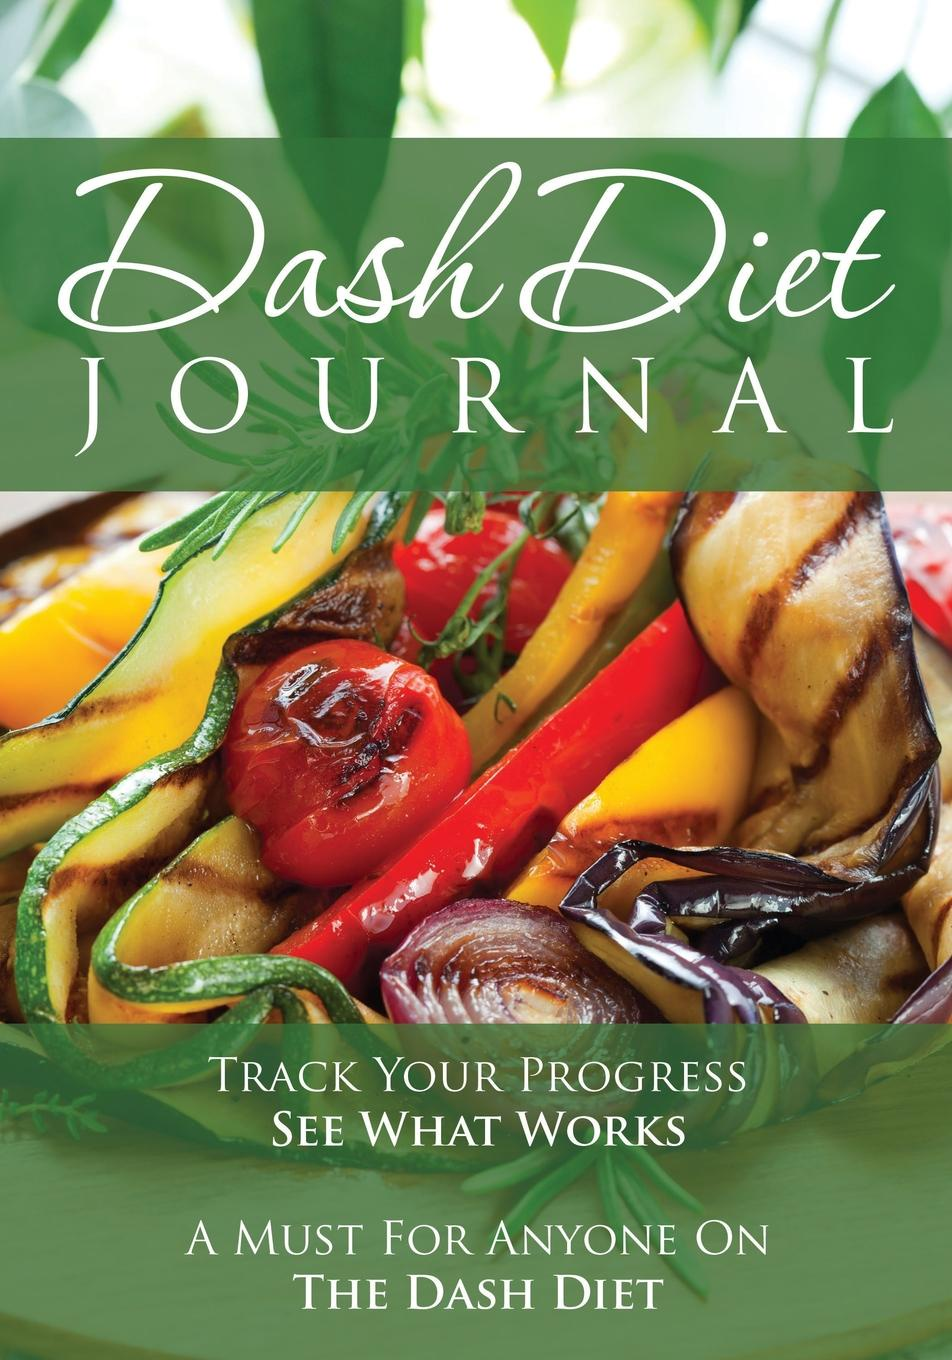 Speedy Publishing LLC The Dash Diet Journal. Track Your Progress See What Works: A Must for Anyone on the